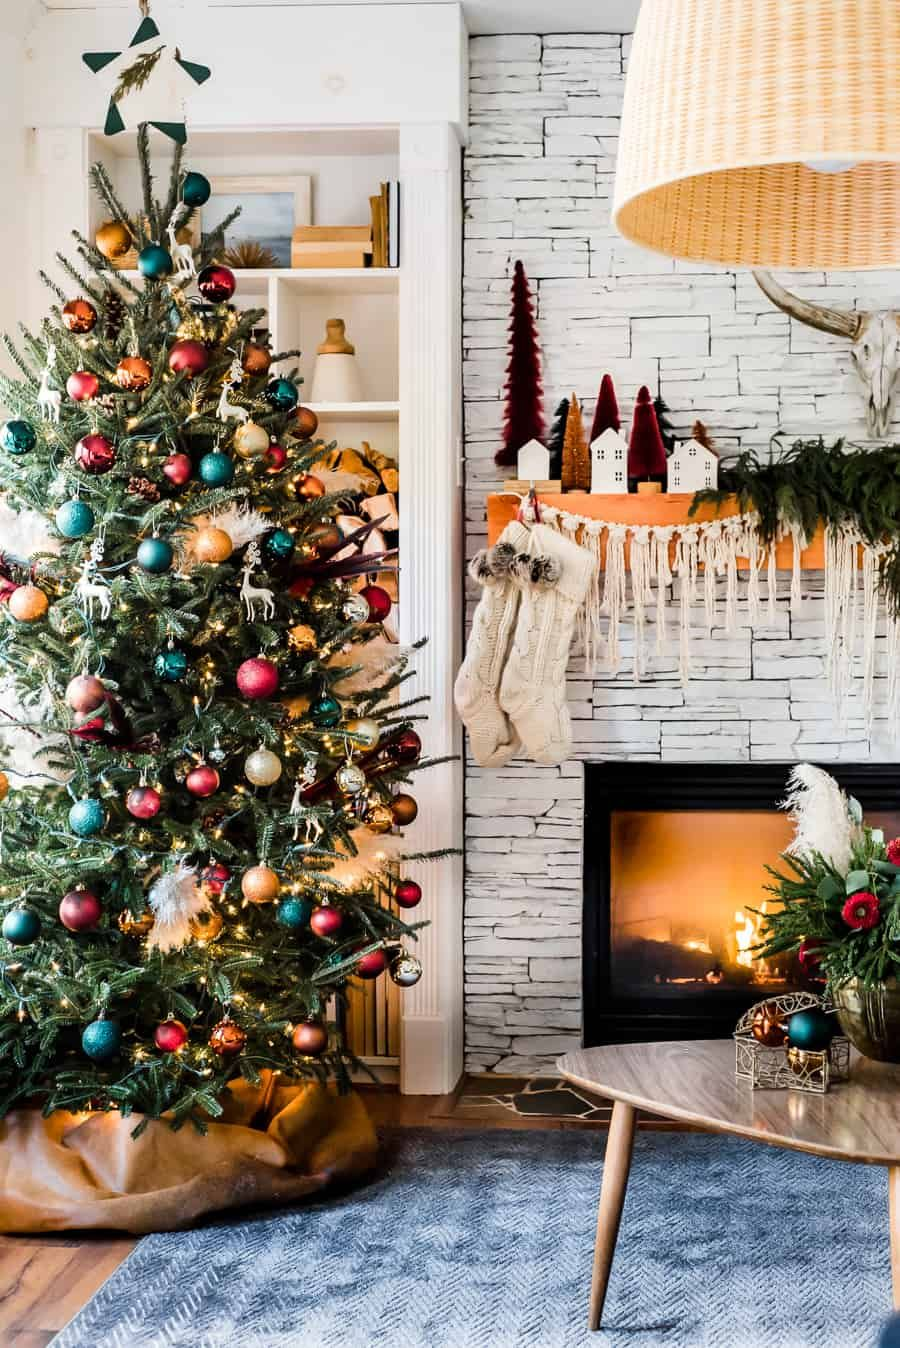 What a beautiful boho Christmas home decor. #bohochristmas #christmasdecor #bohemianchristmas